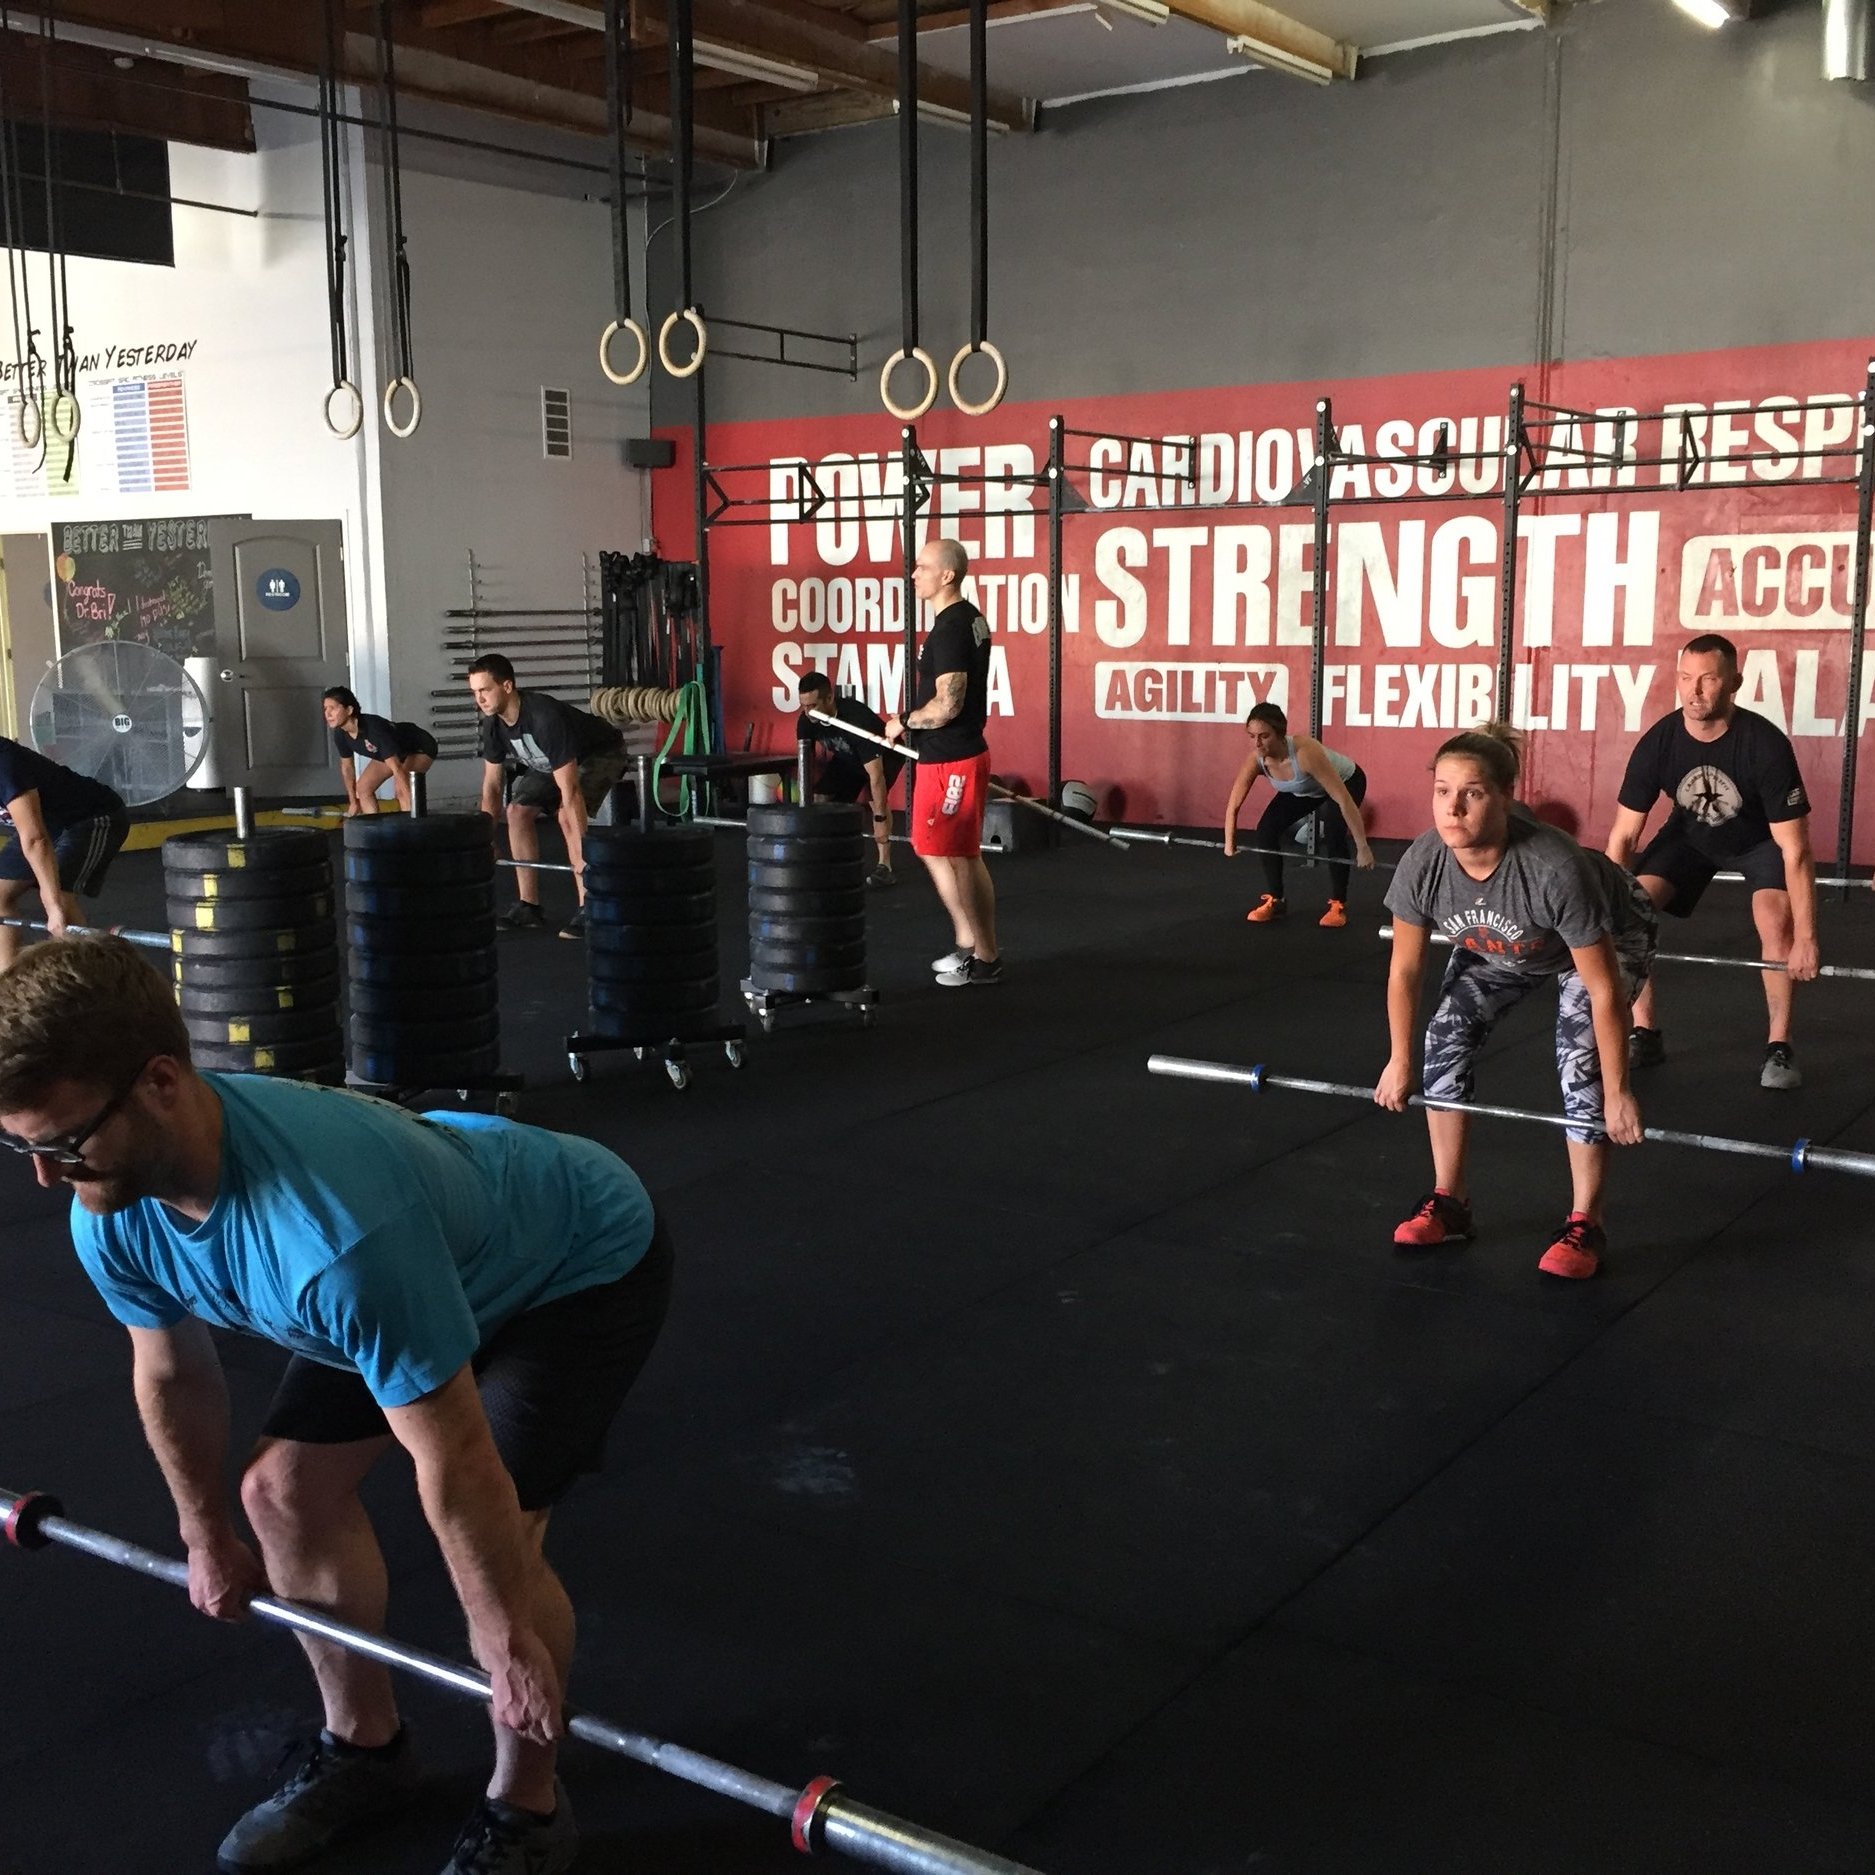 We offer a variety of services, including CrossFit classes, personal training and much more.